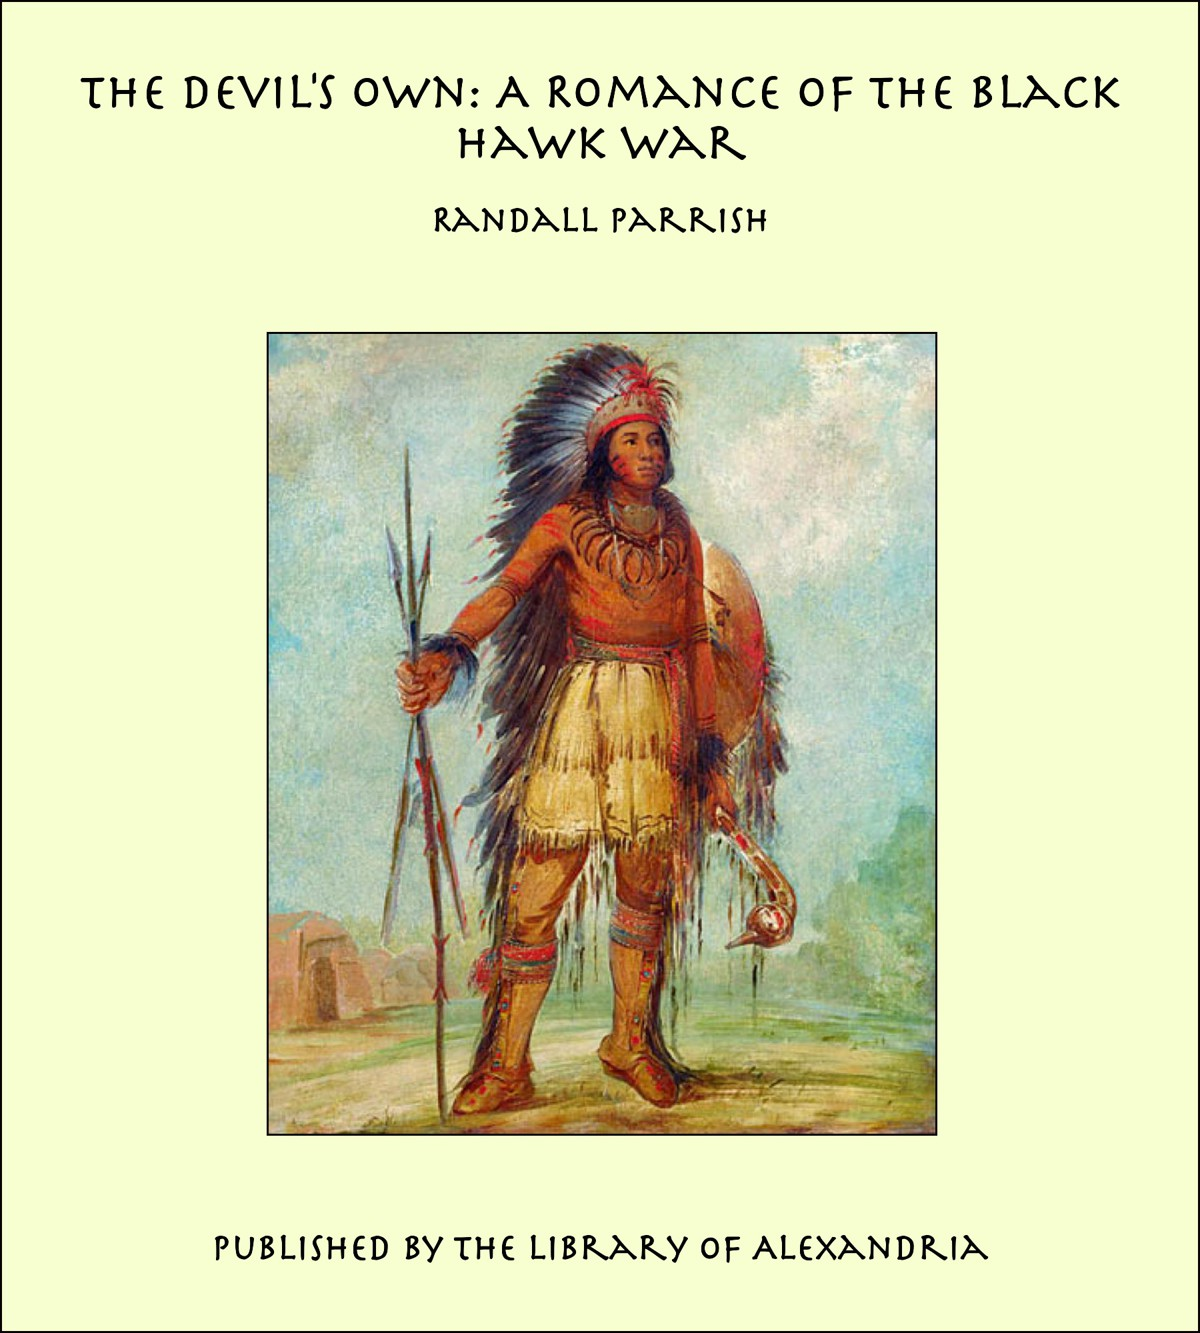 Randall Parrish - The Devil's Own: A Romance of the Black Hawk War